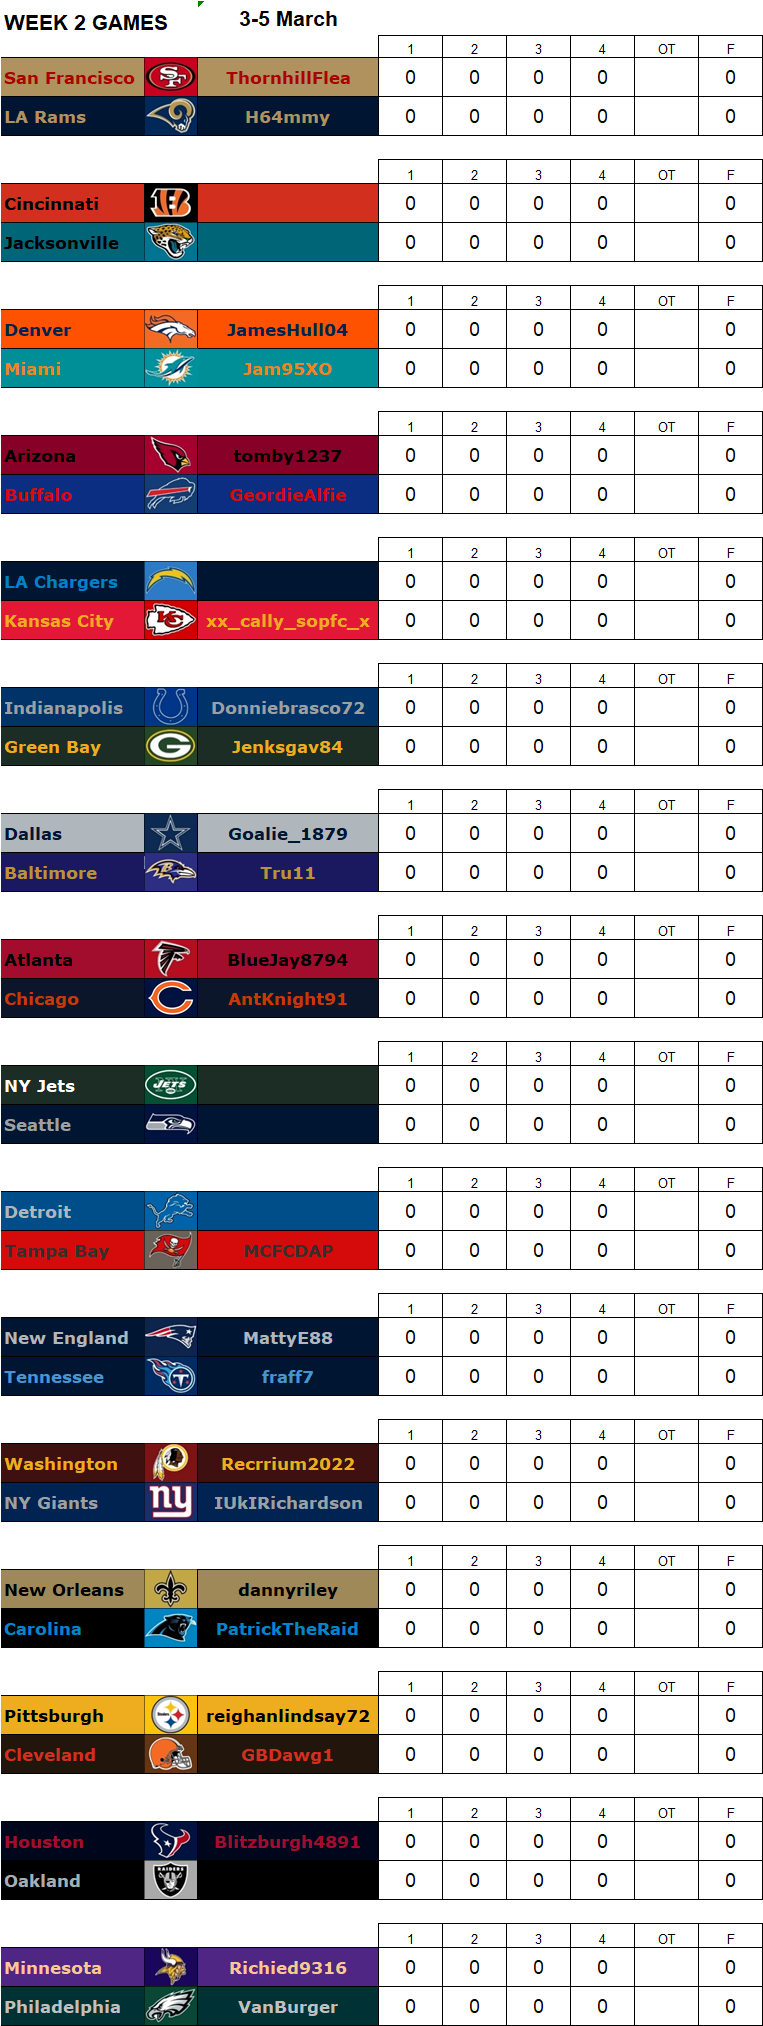 Week 2 Regular Season Matchups, 3-5 March W2g14